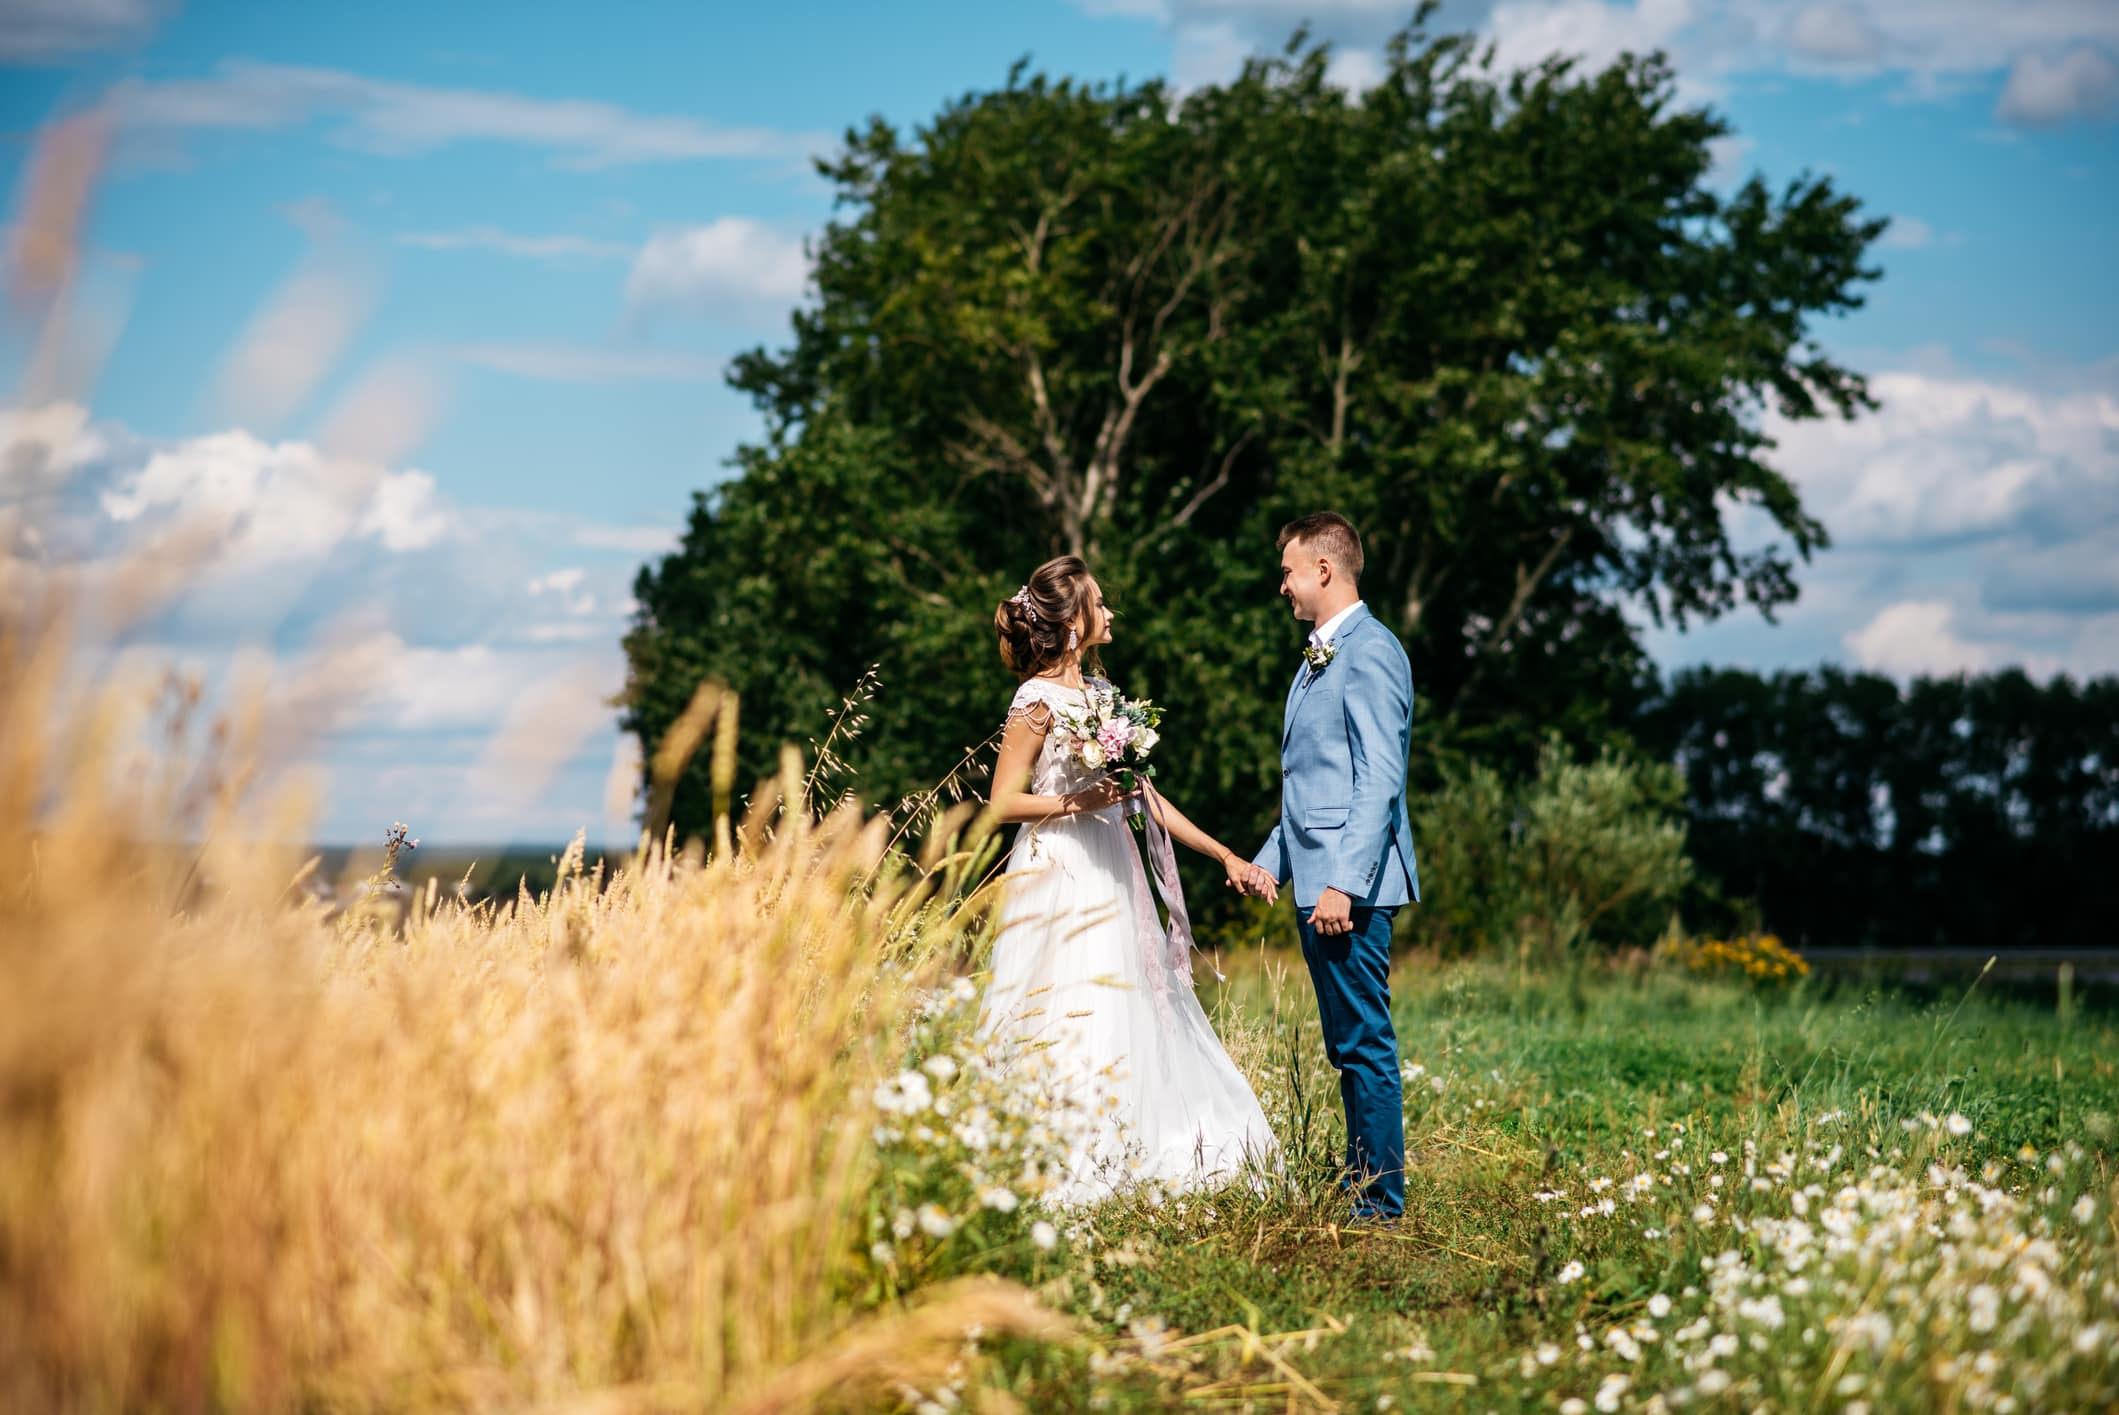 Wedding Photography Guide: Wedding Photography Posing Guide